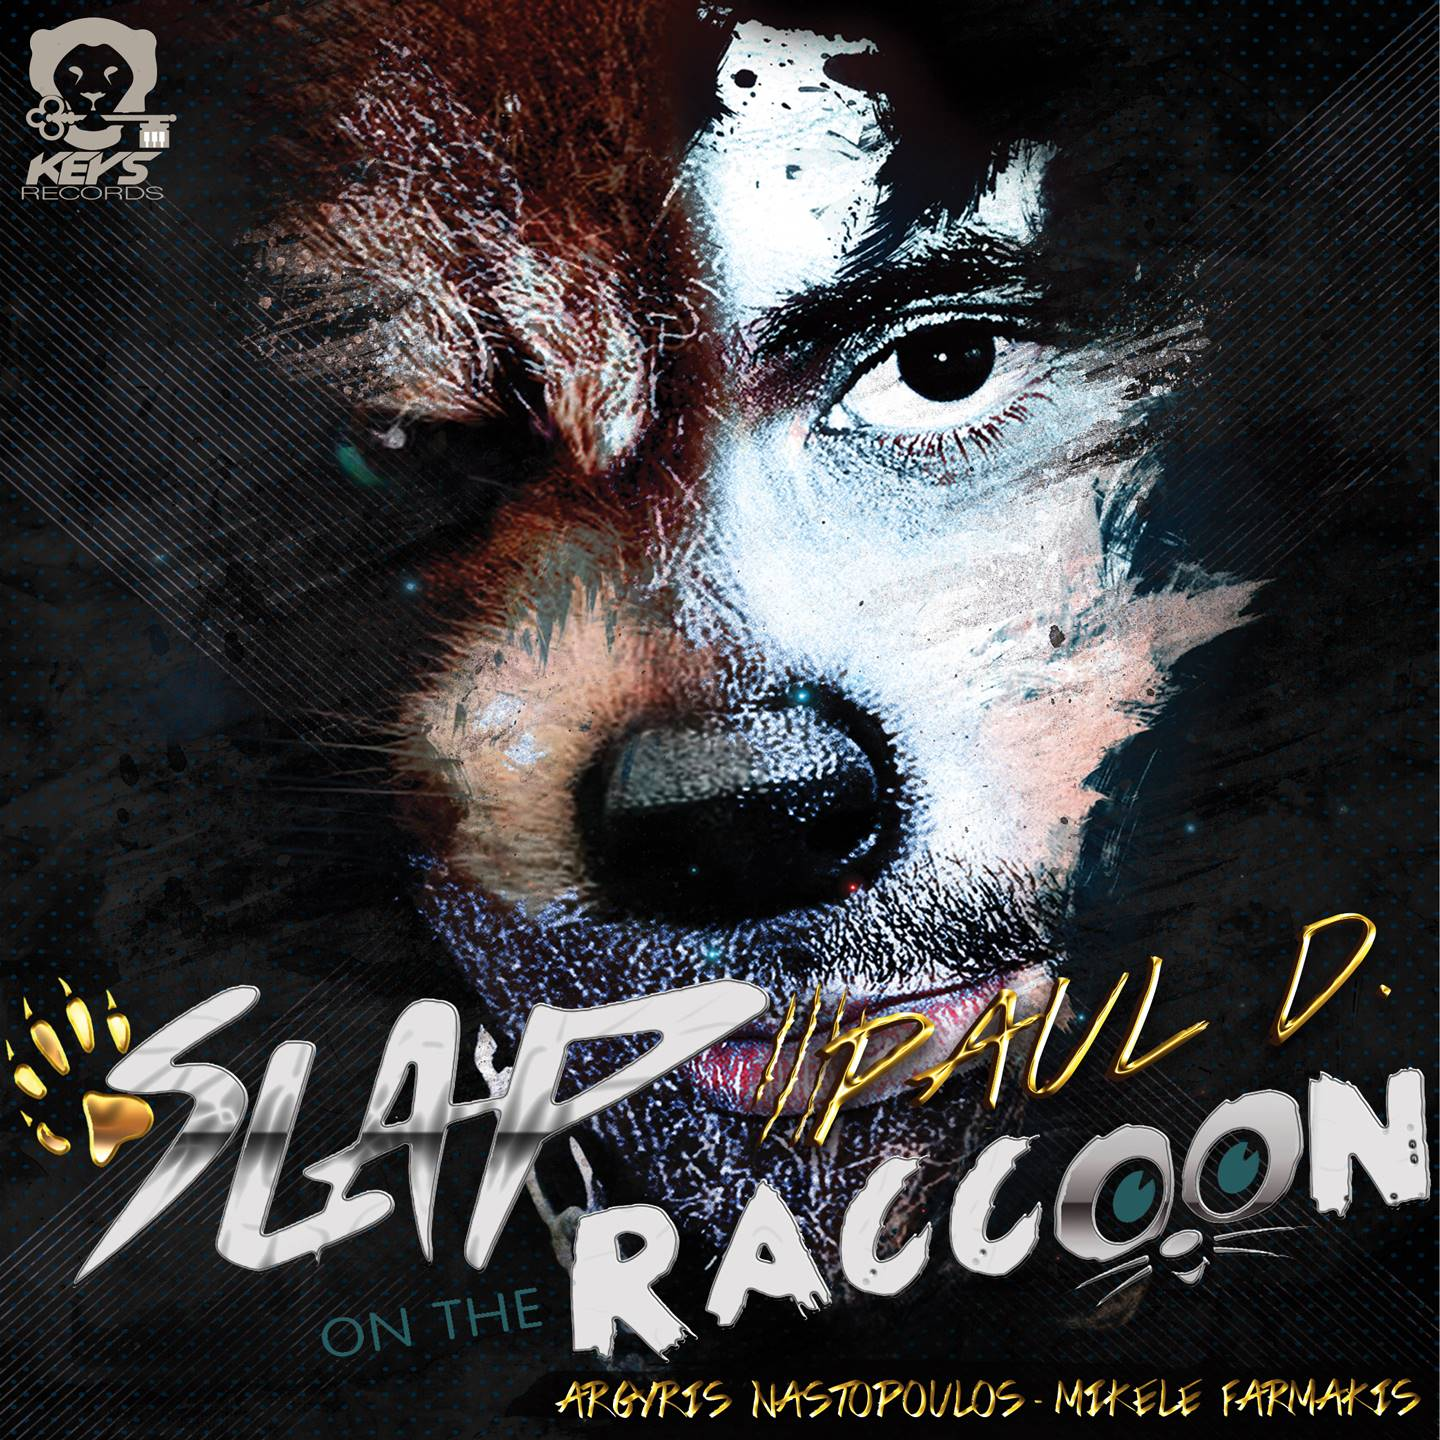 Slap on a Raccoon by Argiris Nastopoulos feat Paul D